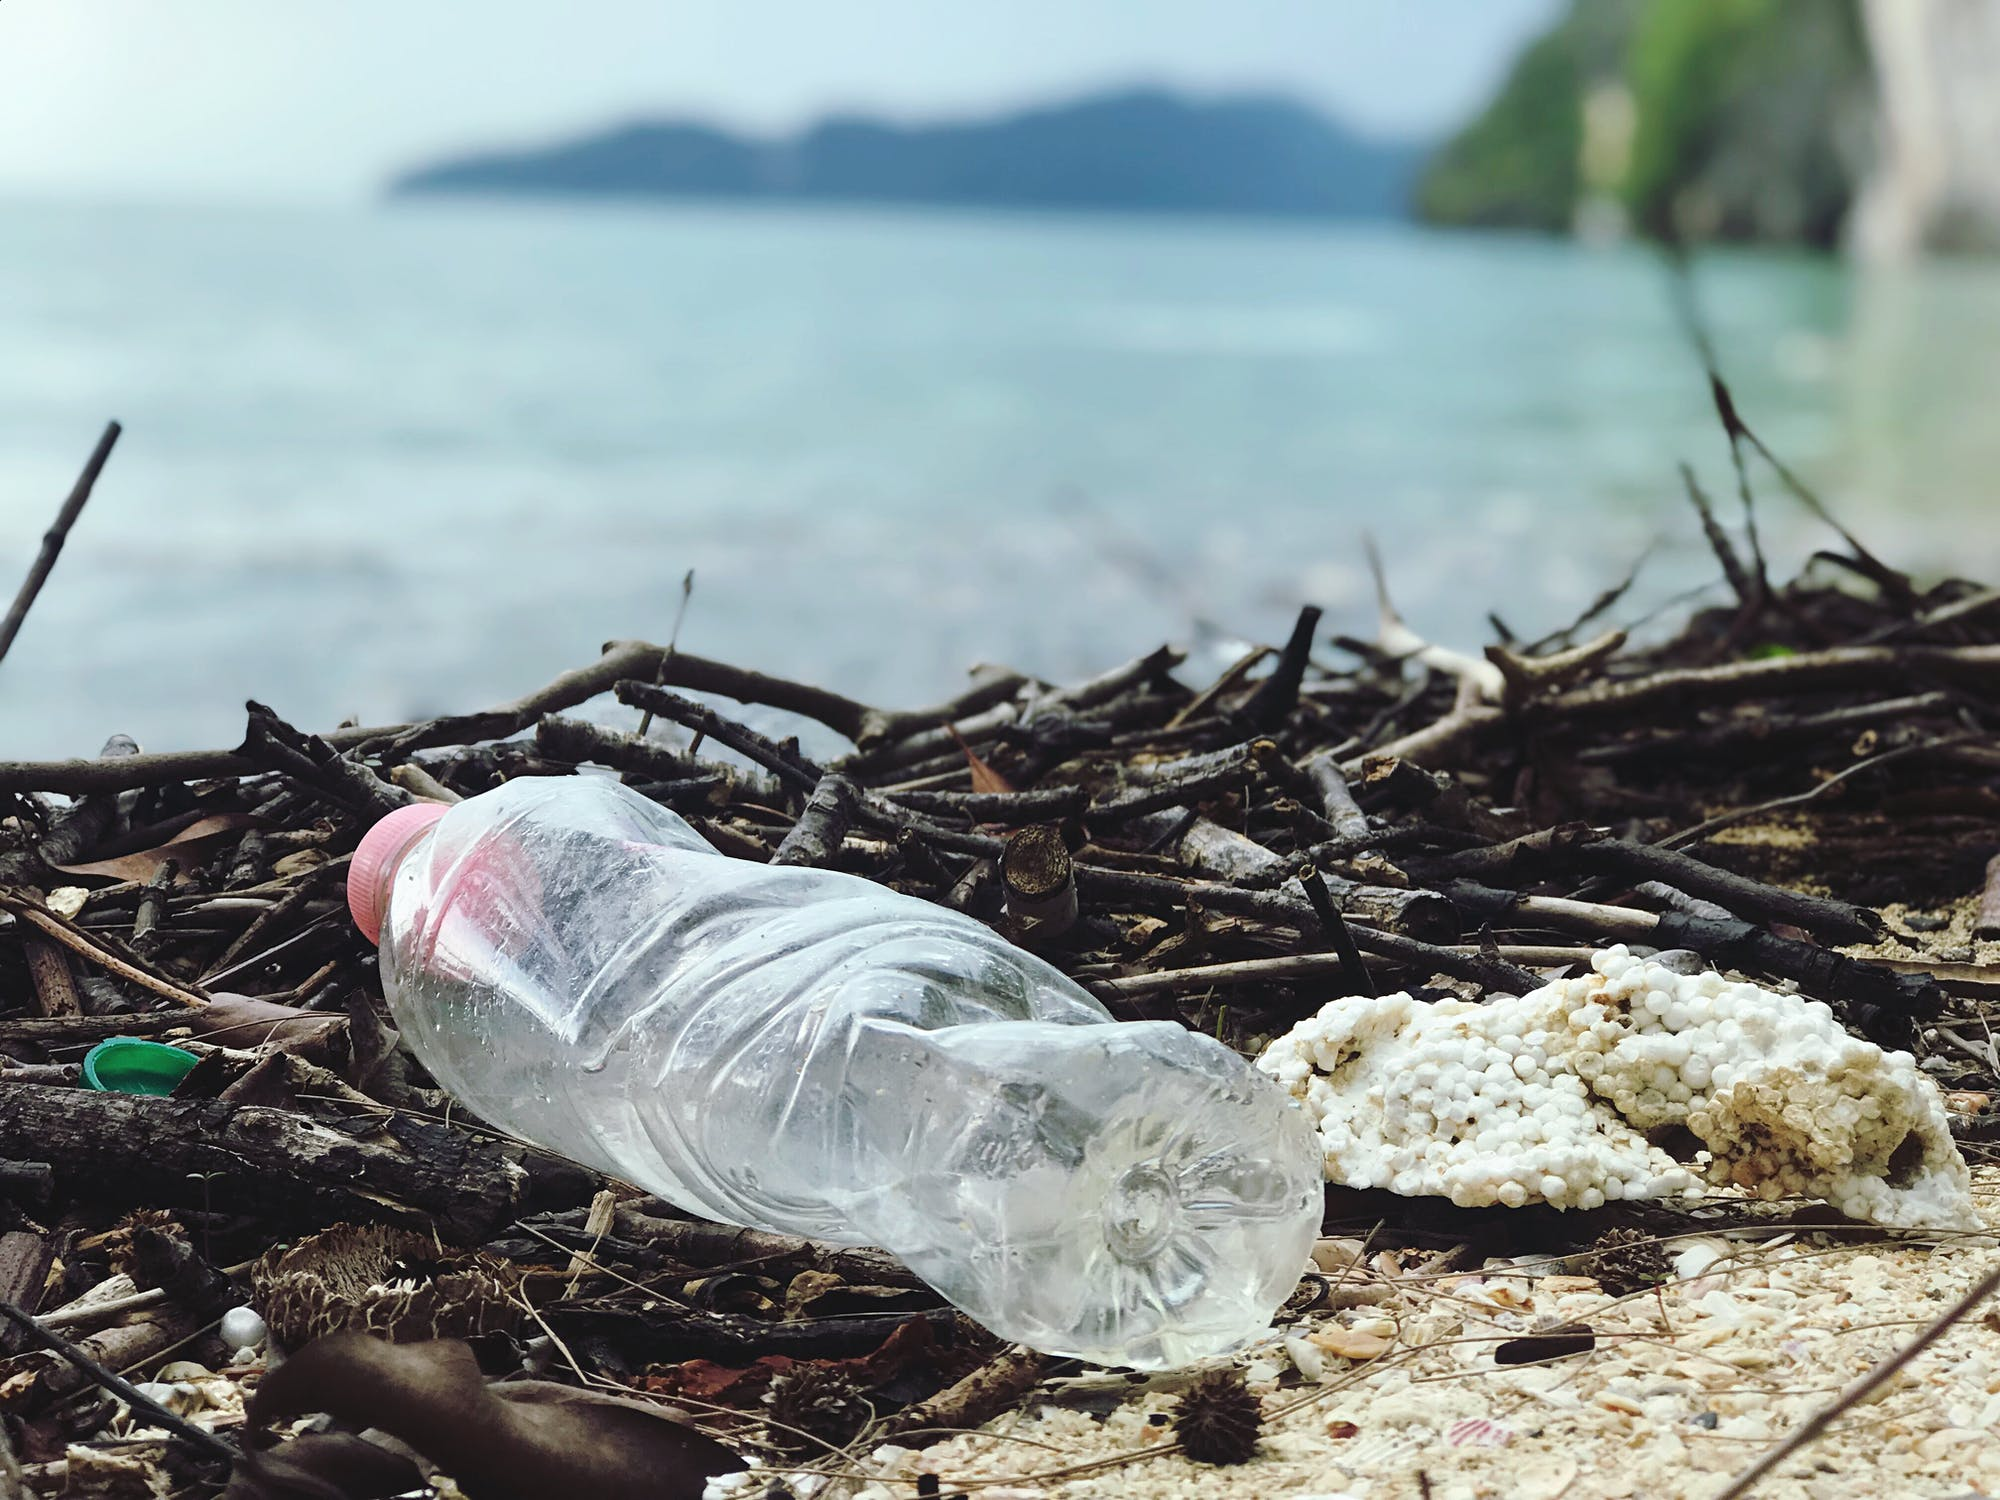 Our Daily Planet: New WWF Report Highlights Challenges and Solutions in Corporate Plastic Management